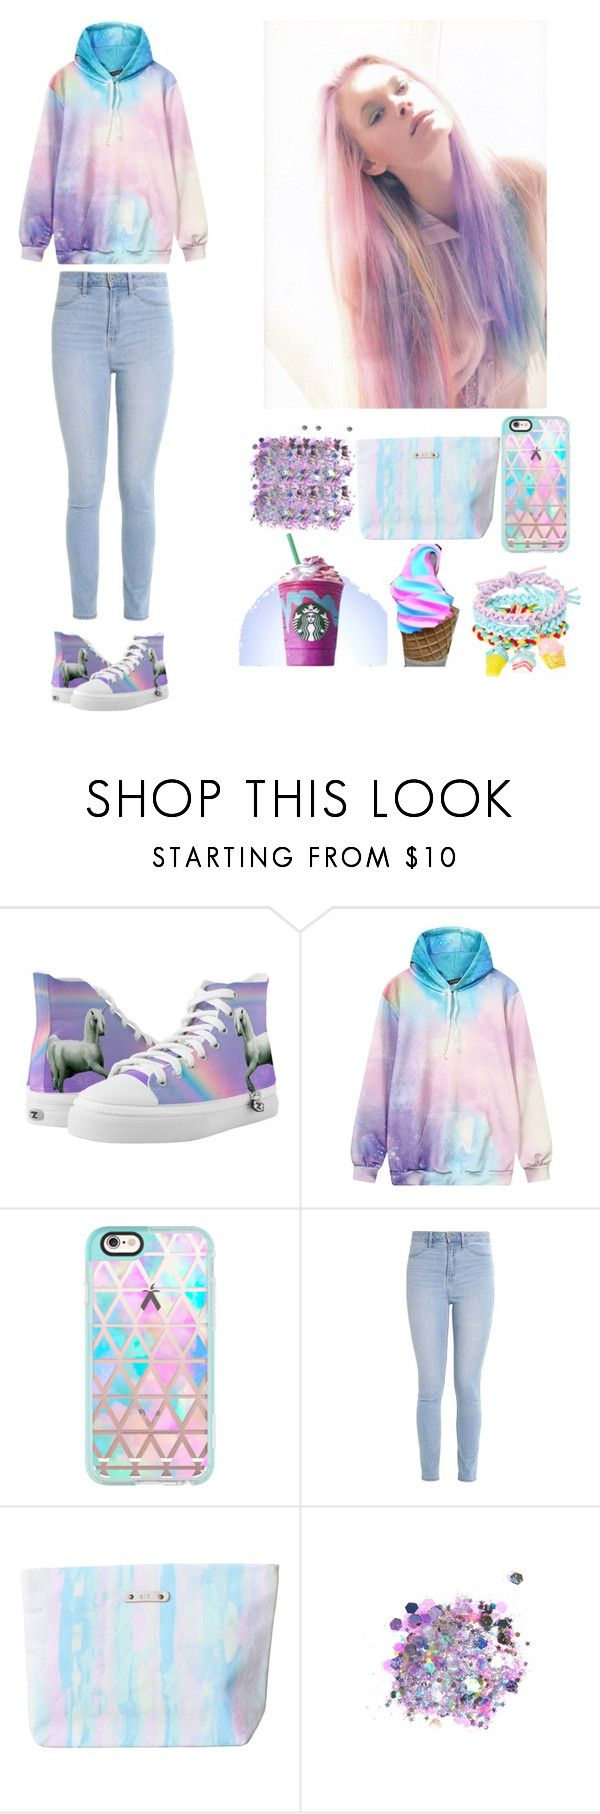 """Rainbow Outfit"" by aspiringdesigner ❤ liked on Polyvore featuring Casetify, Hollister Co. and The Gypsy Shrine"